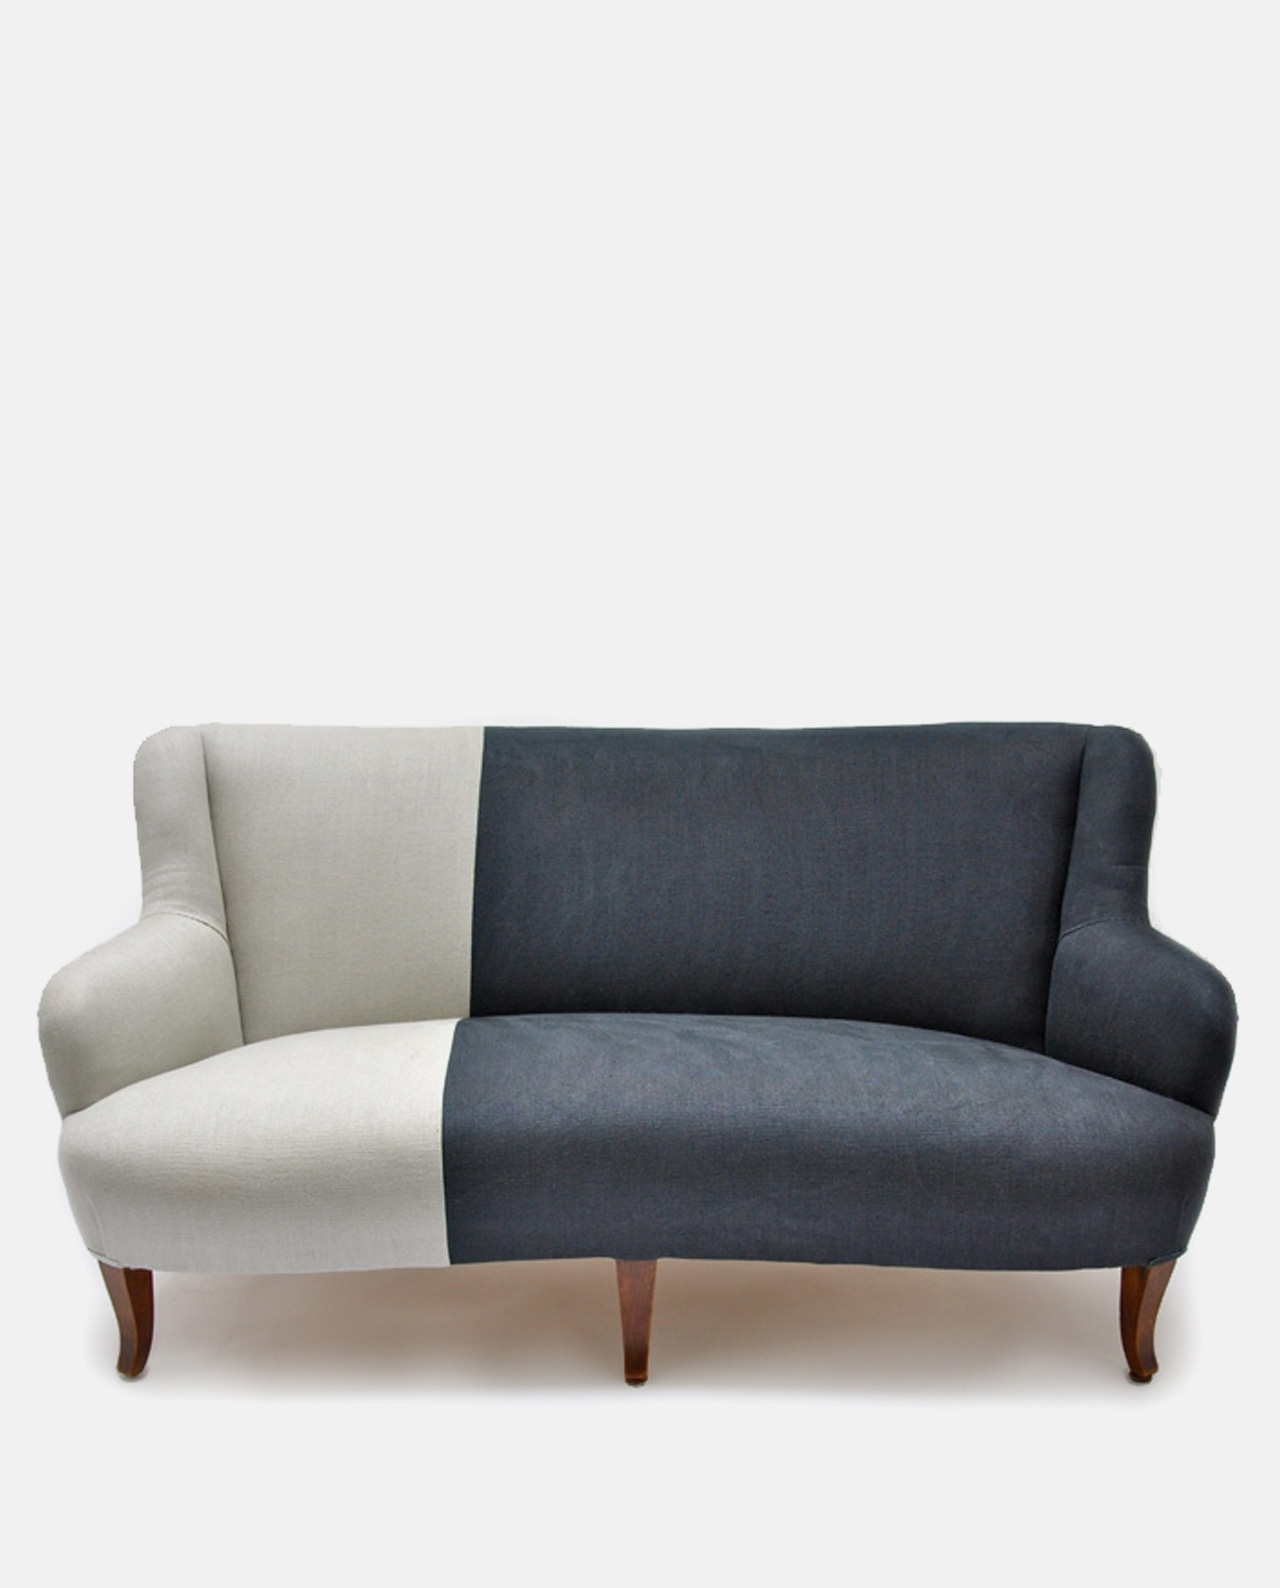 Two Tone Sofas Throughout Widely Used Vintage Two Tone Sofa Designers Guild Linen (View 15 of 20)